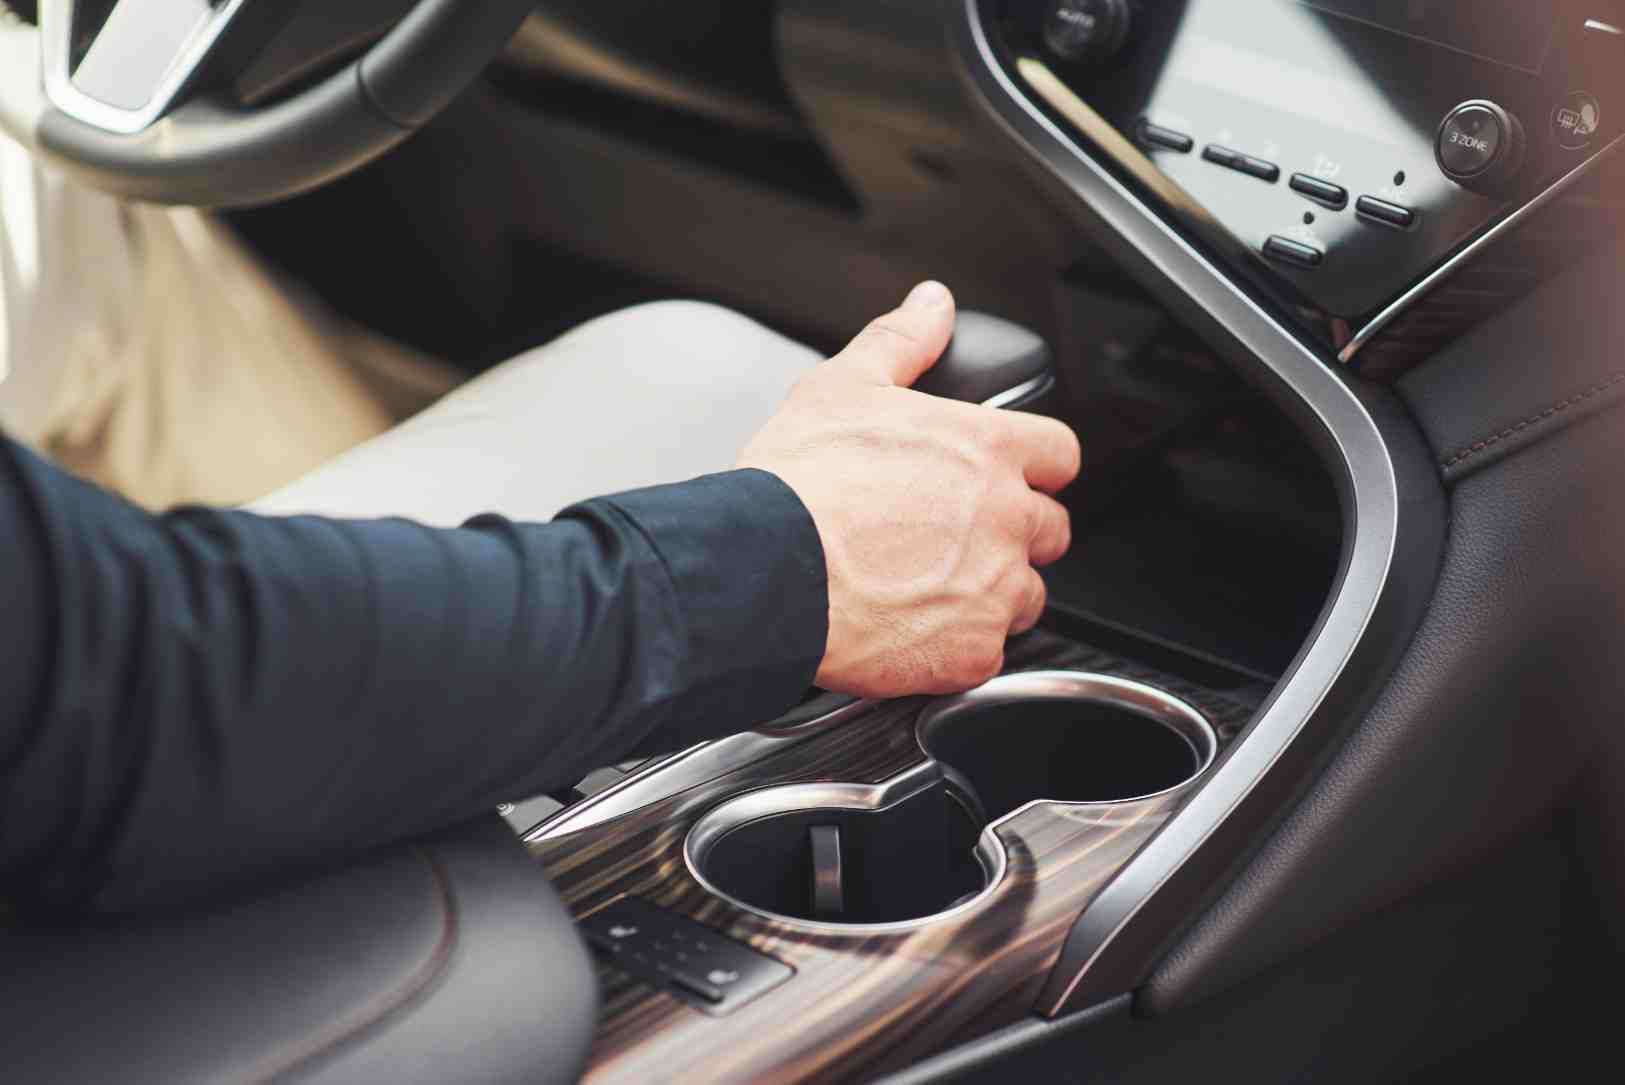 Drive on higher gears to save fuel